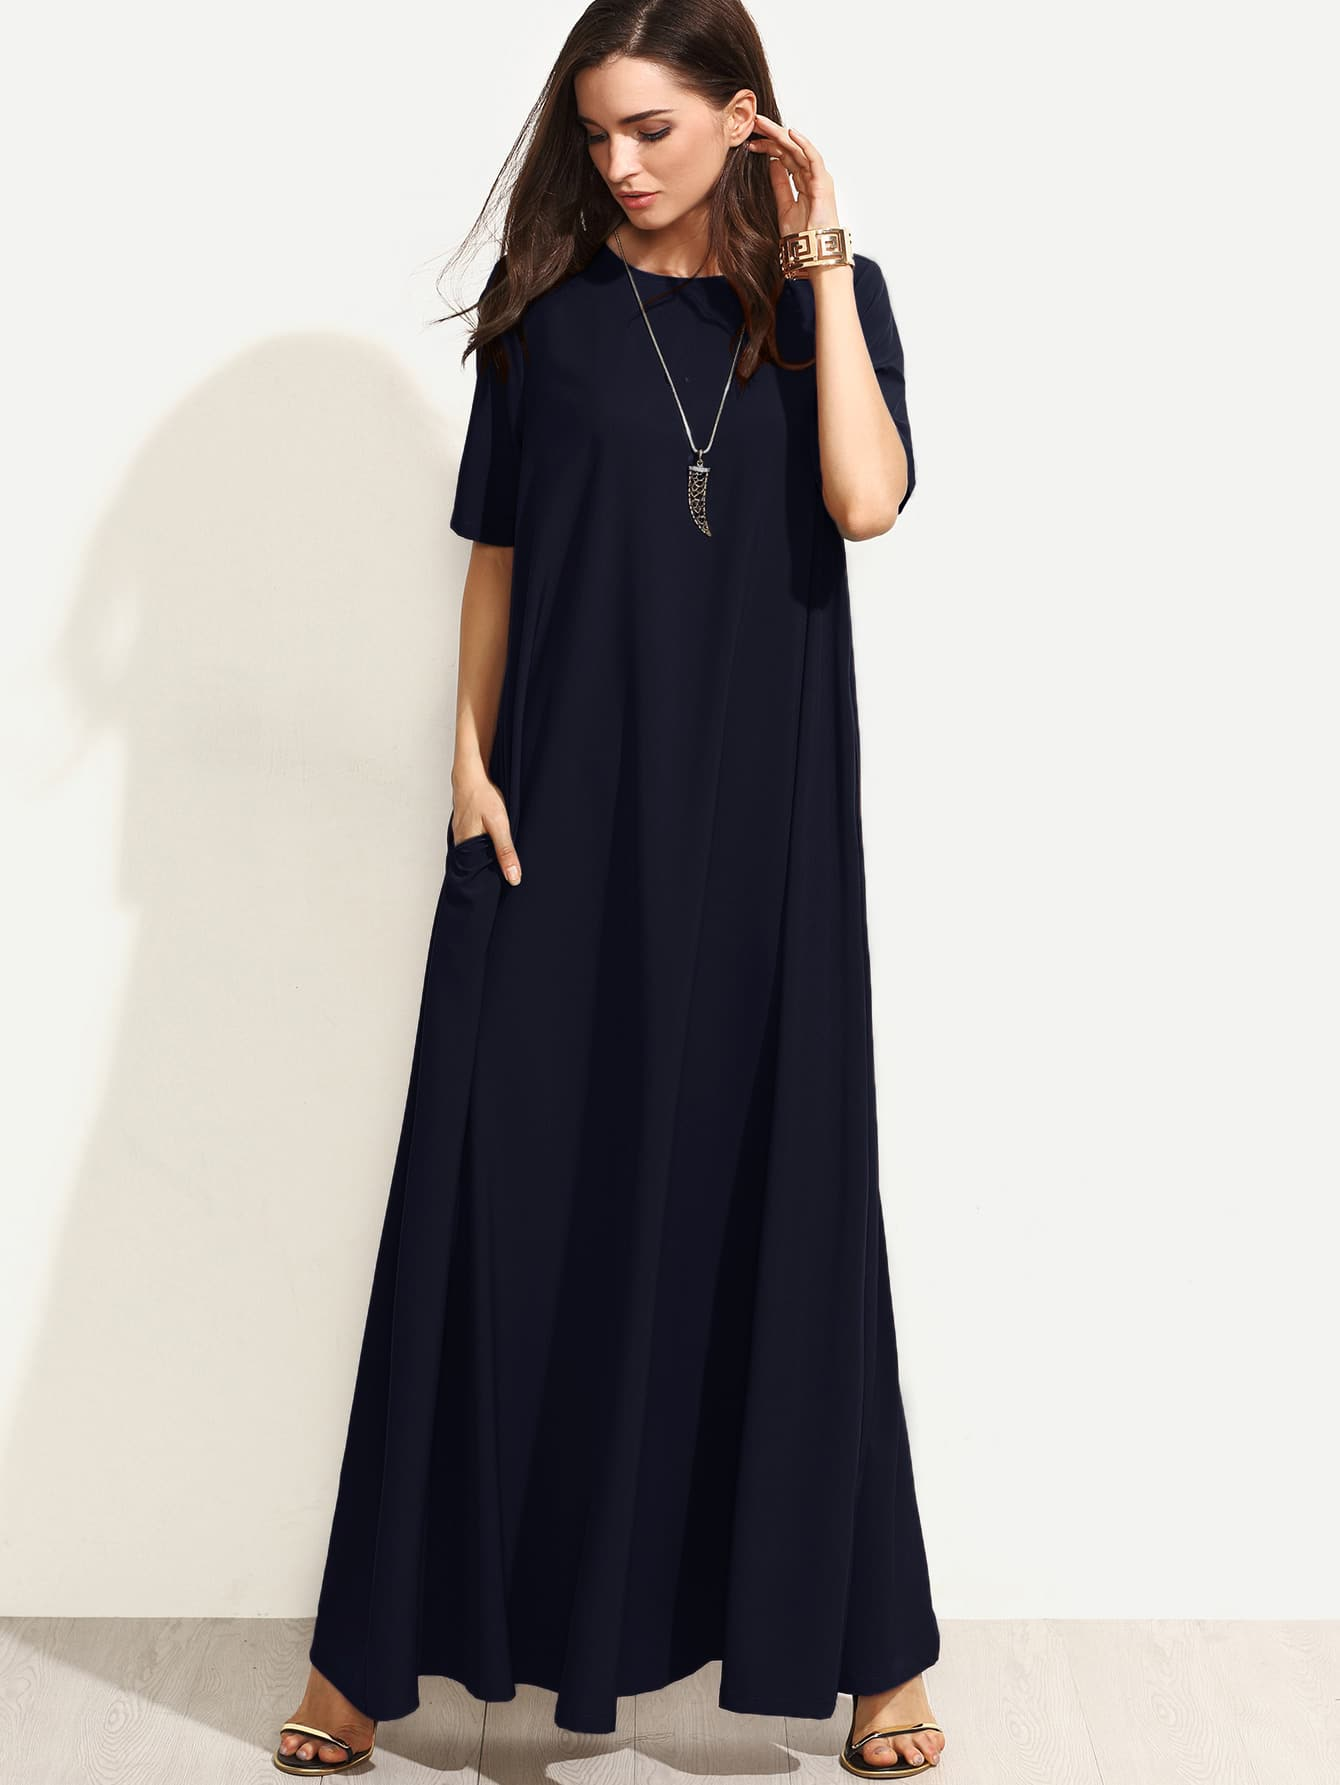 Zipper Back Full Length Swing Tee Dress pocket full length tee dress page 10